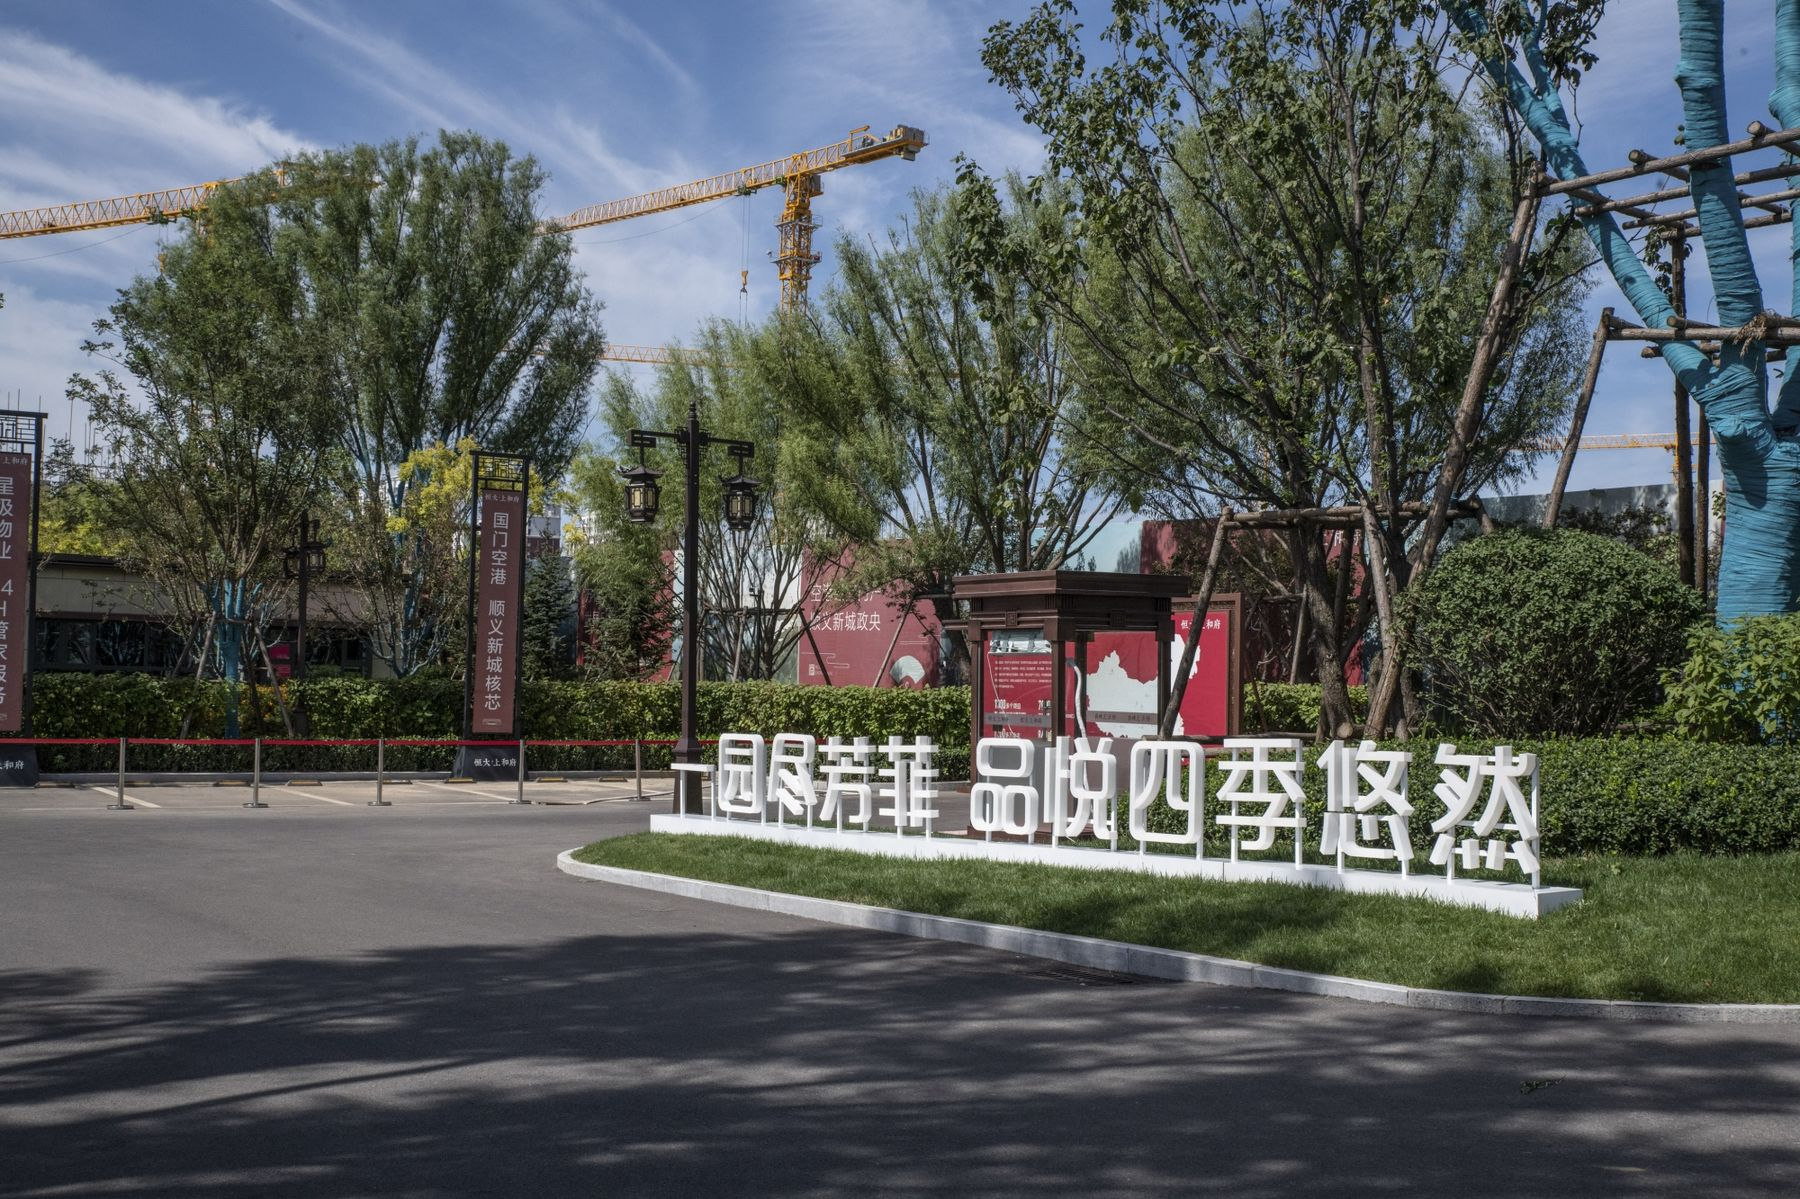 The China Evergrande Group Royal Mansion residential development under construction in Beijing, China.